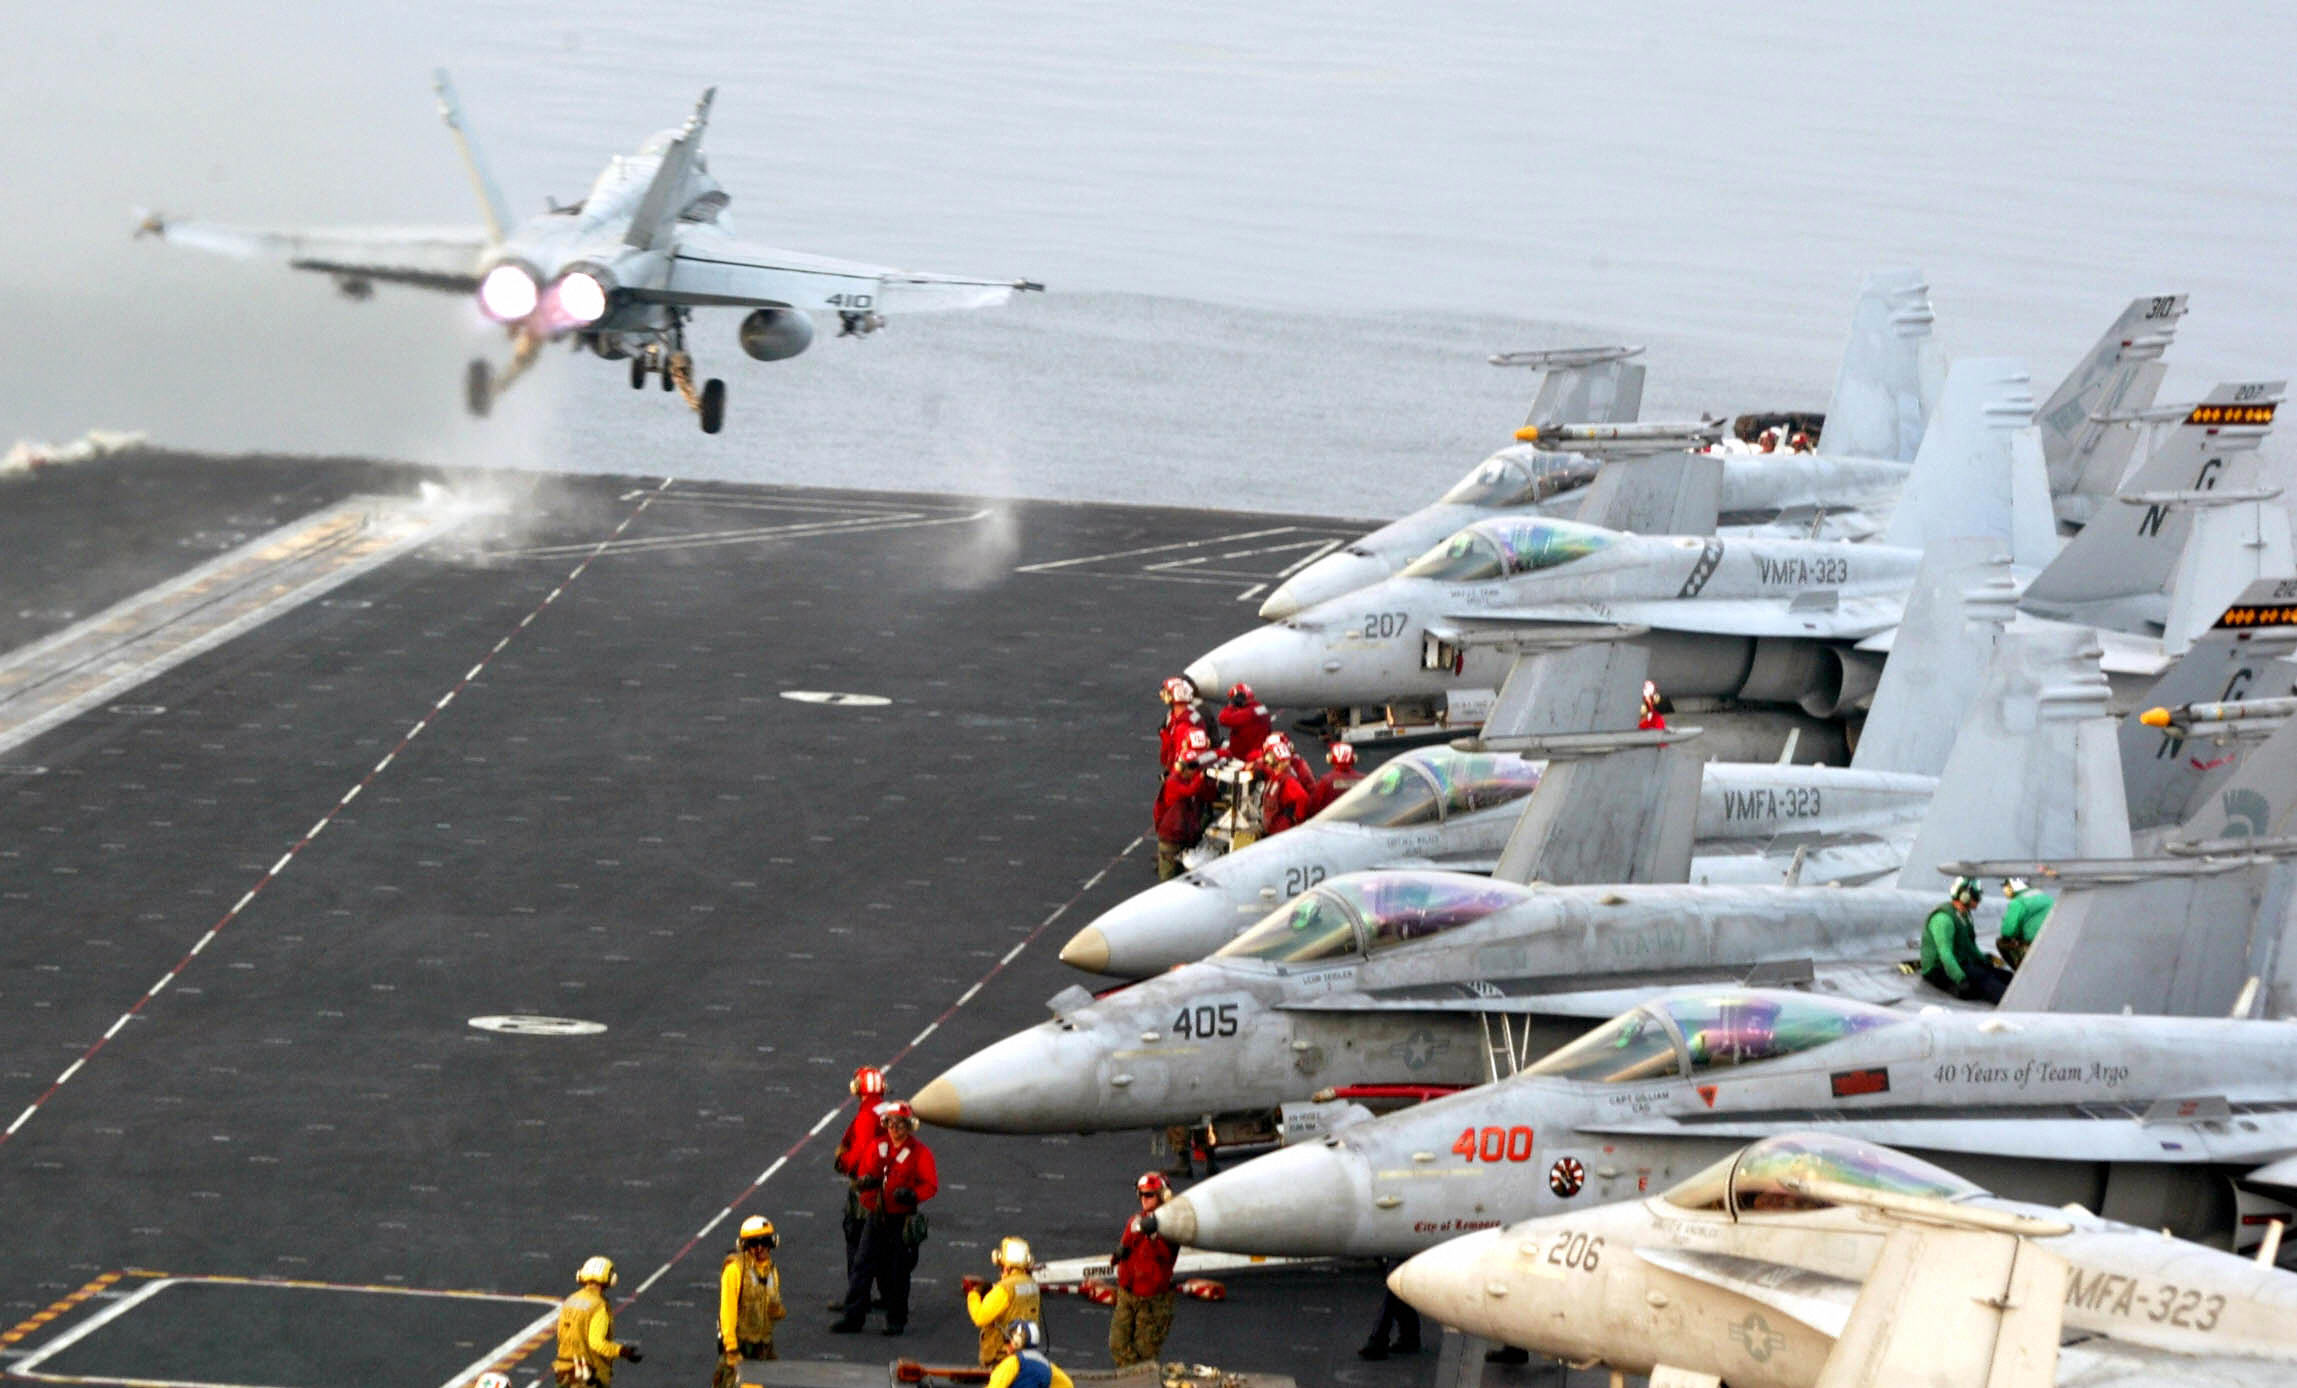 A Super Hornet takes off on board the USS John C. Stennis in the Gulf of Oman off the coast of Pakistan, 23 February 2007.